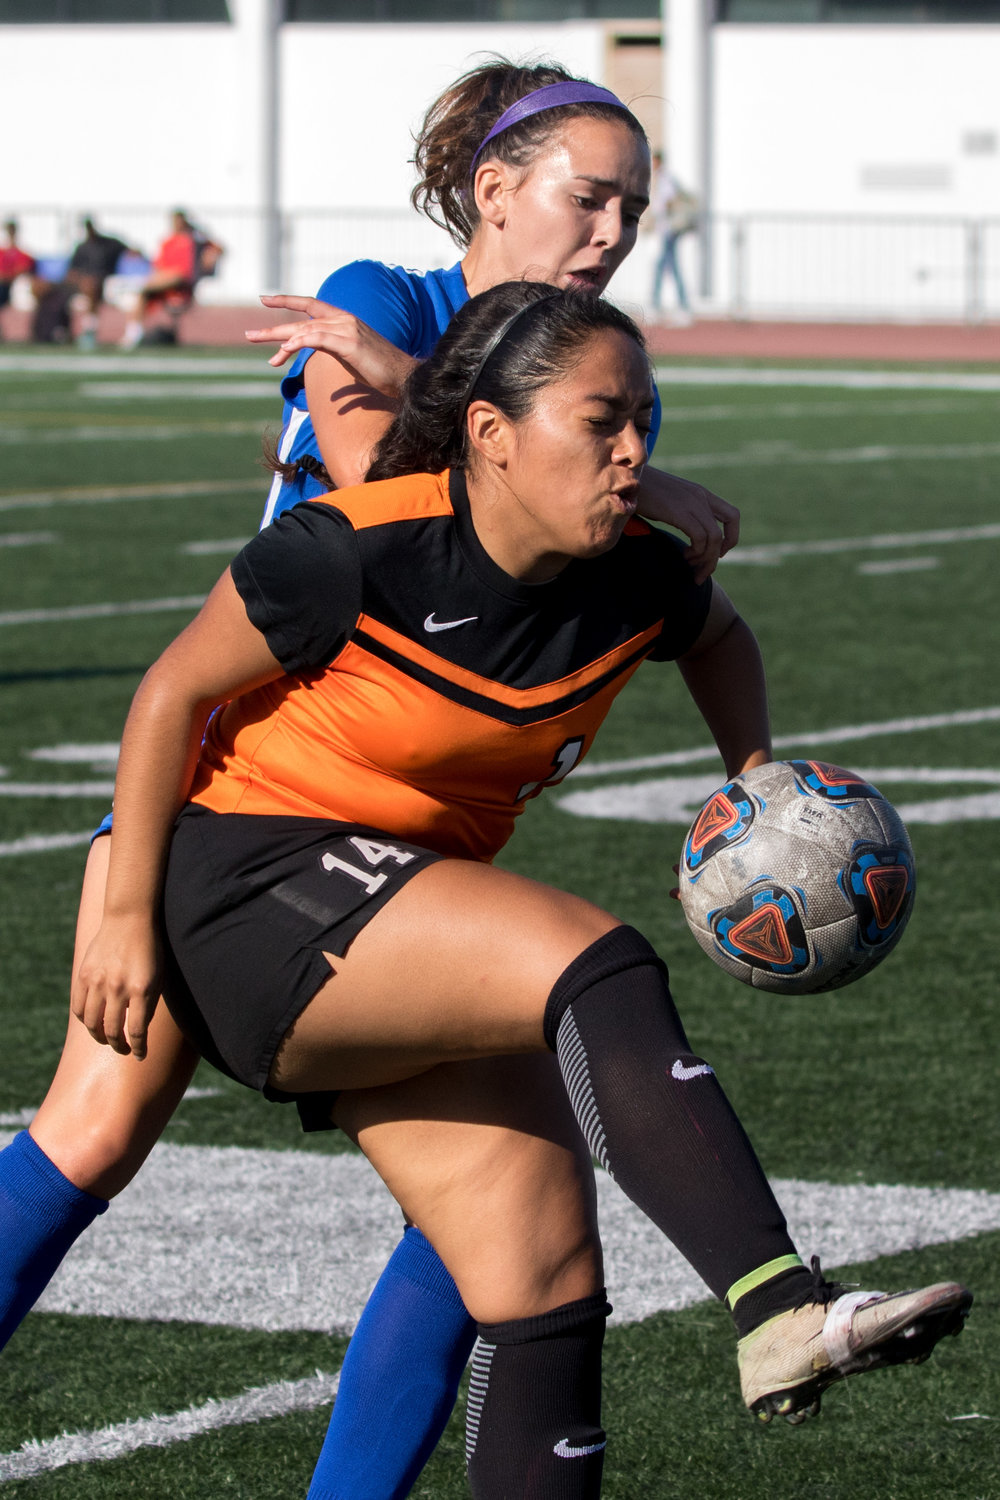 Ventura College Pirates freshman midfielder Marina Salinas (14, middle) attempts to keep the ball away from a Santa Monica College Corsairs defender. The Corsairs were able to come out with a 2-1 victory at the Corsair Field located on Santa Monica Colleges Main Campus in Santa Monica California on September 26, 2017. (Photo By: Zane Meyer-Thornton)